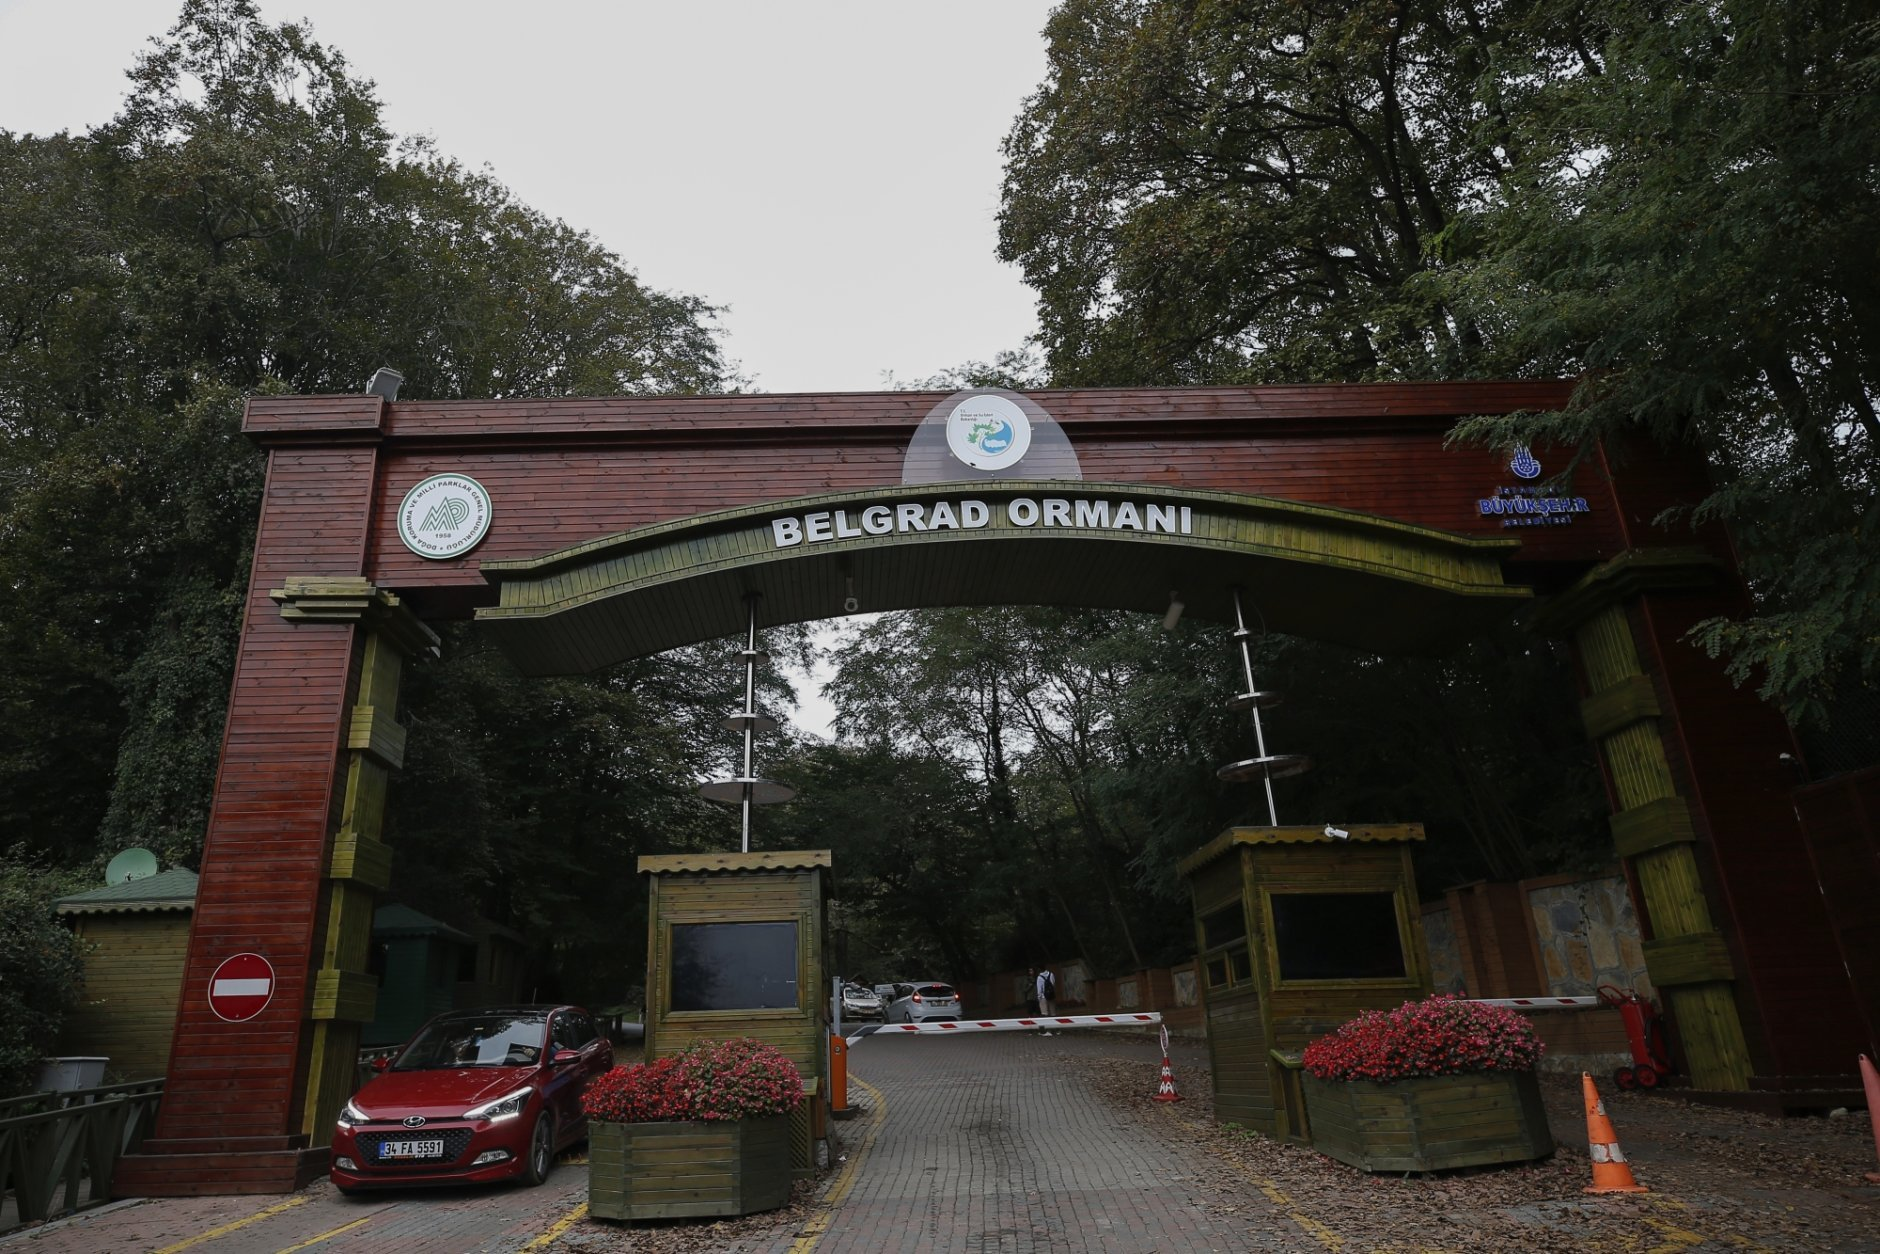 The entrance to the Belgrade Forest on the outskirts of Istanbul, Saturday, Oct. 20, 2018. A Turkish official told AP that investigators are looking into the possibility that Khashoggi's remains may have been taken outside Istanbul. Speaking on condition of anonymity because the investigation is ongoing, the official said police have established that two vehicles belonging to the consulate left the building Oct. 2. One traveled to the Belgrade Forest on the city's outskirts, while the other went to the city of Yalova, across the Sea of Marmara from Istanbul, the official said. (AP Photo/Emrah Gurel)